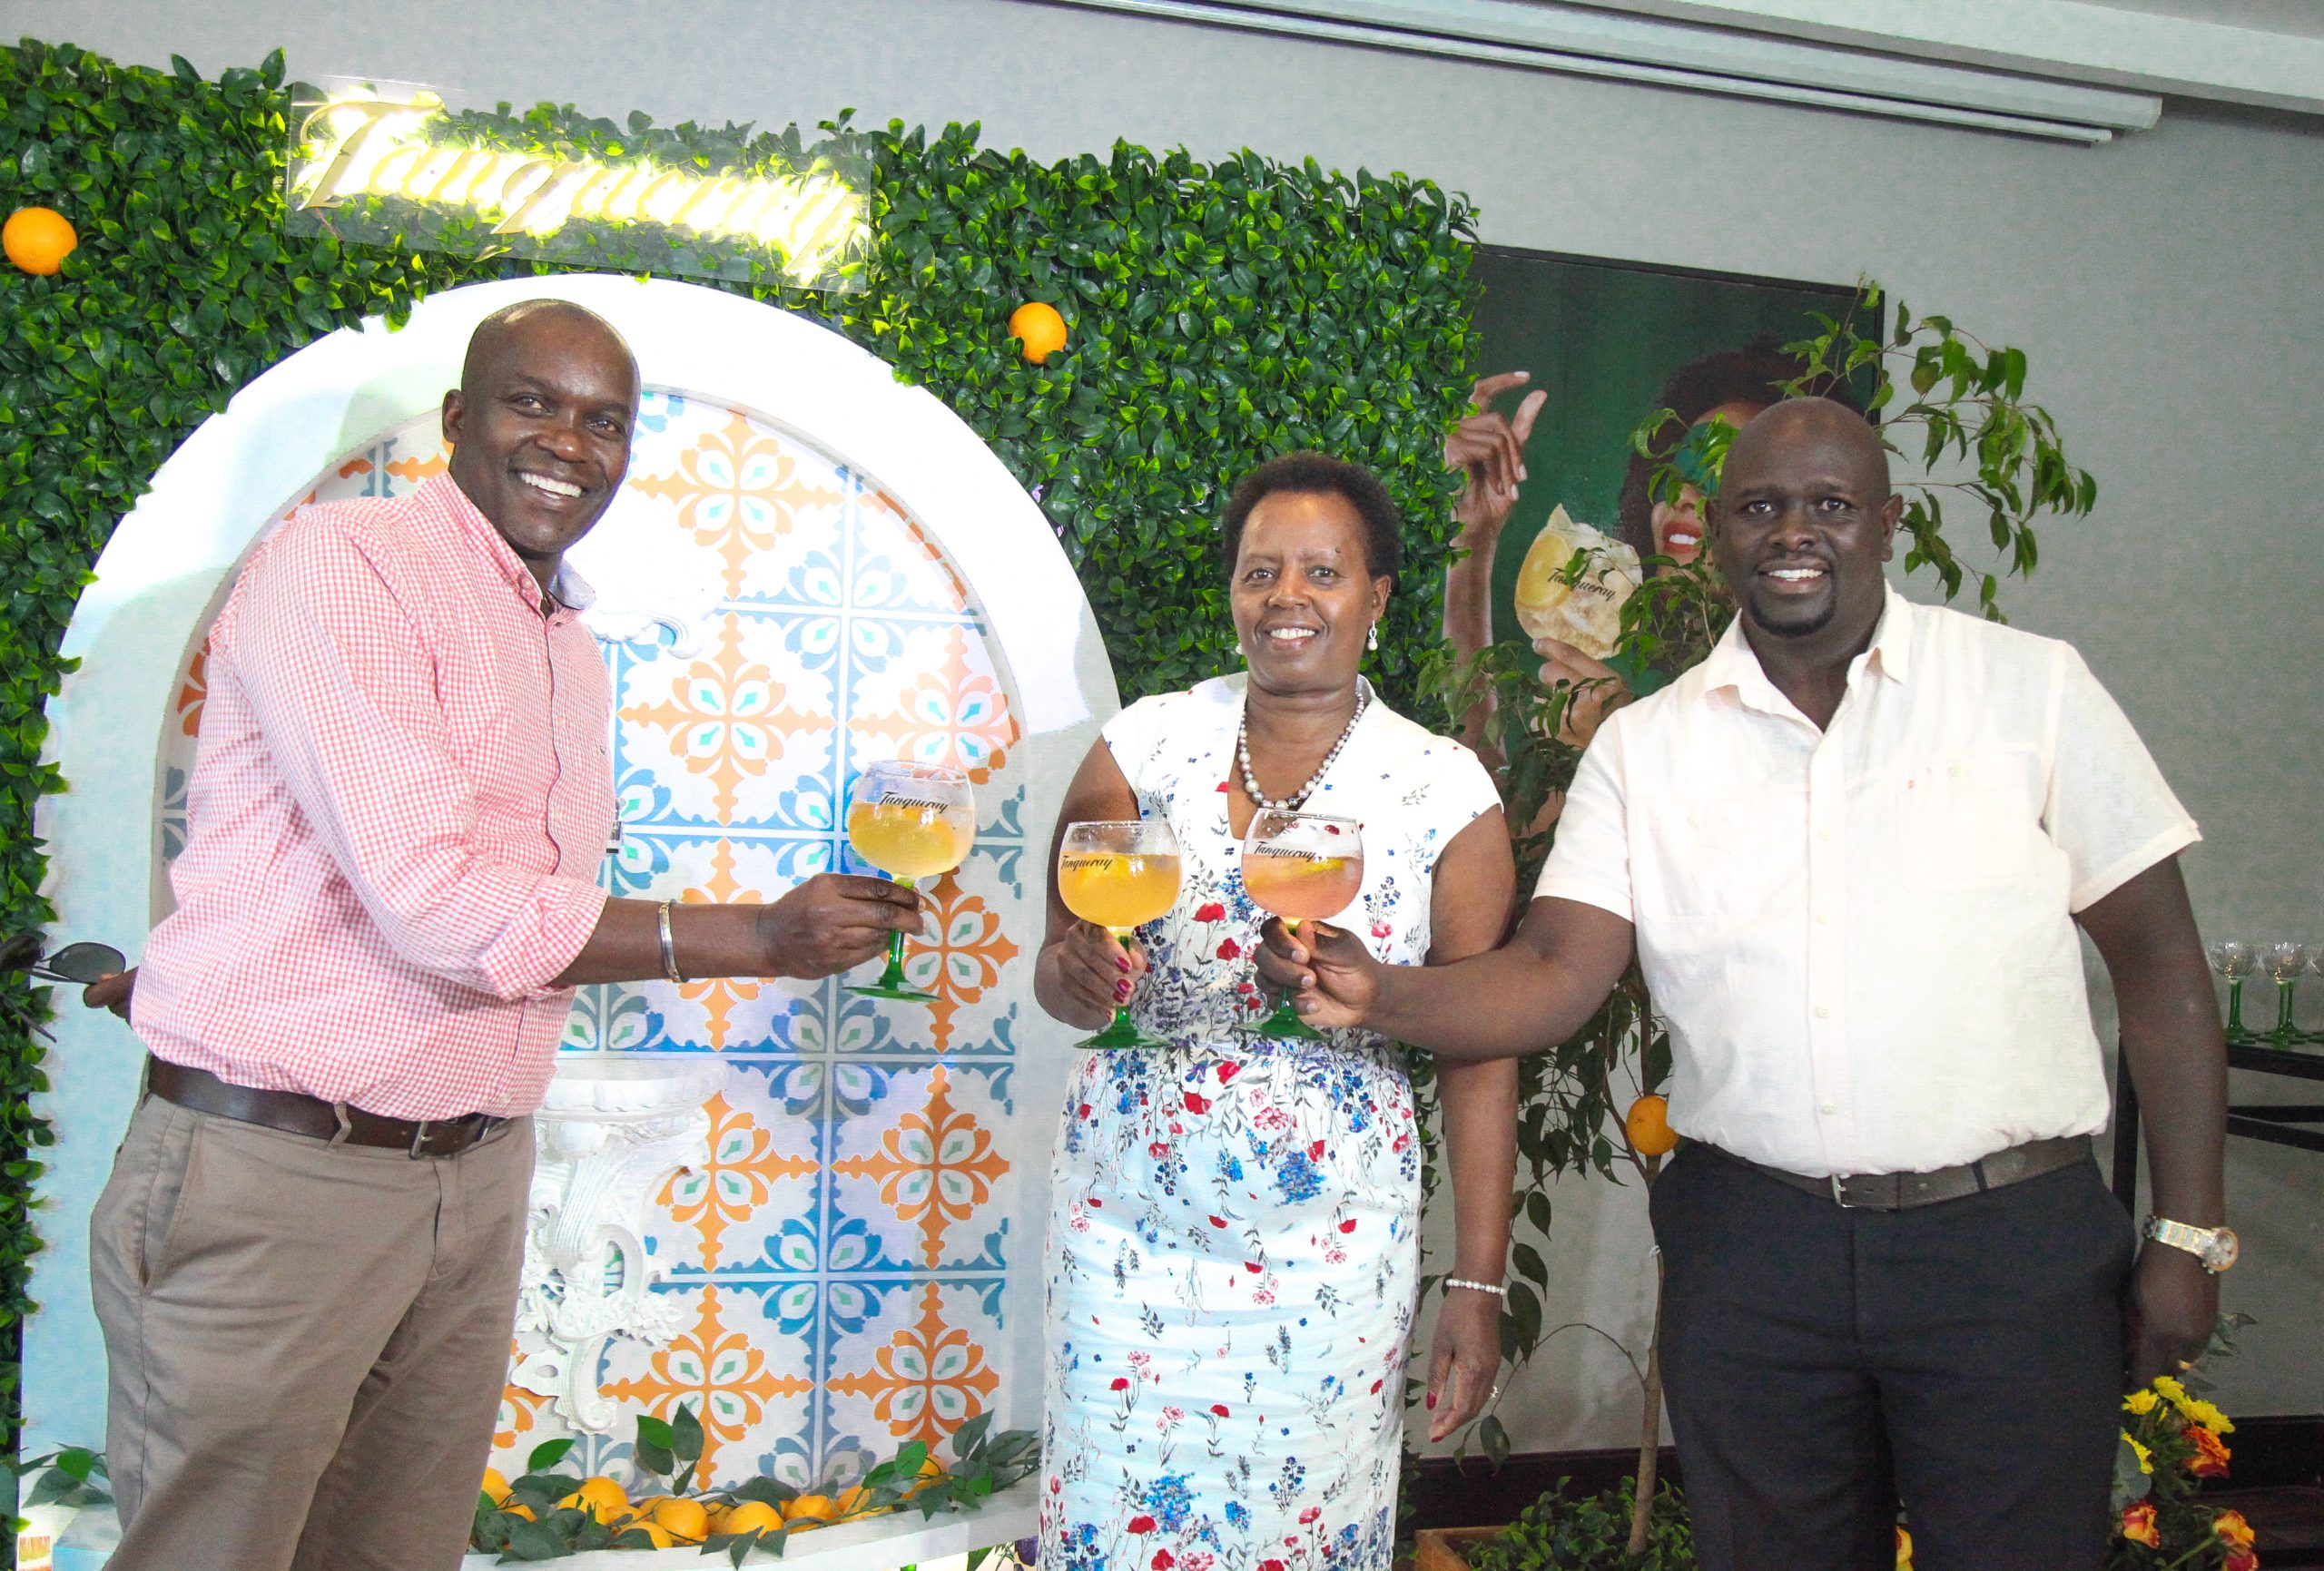 Kbl Officially Launches Tanqueray Flor De Sevilla Gin In Kenya photo